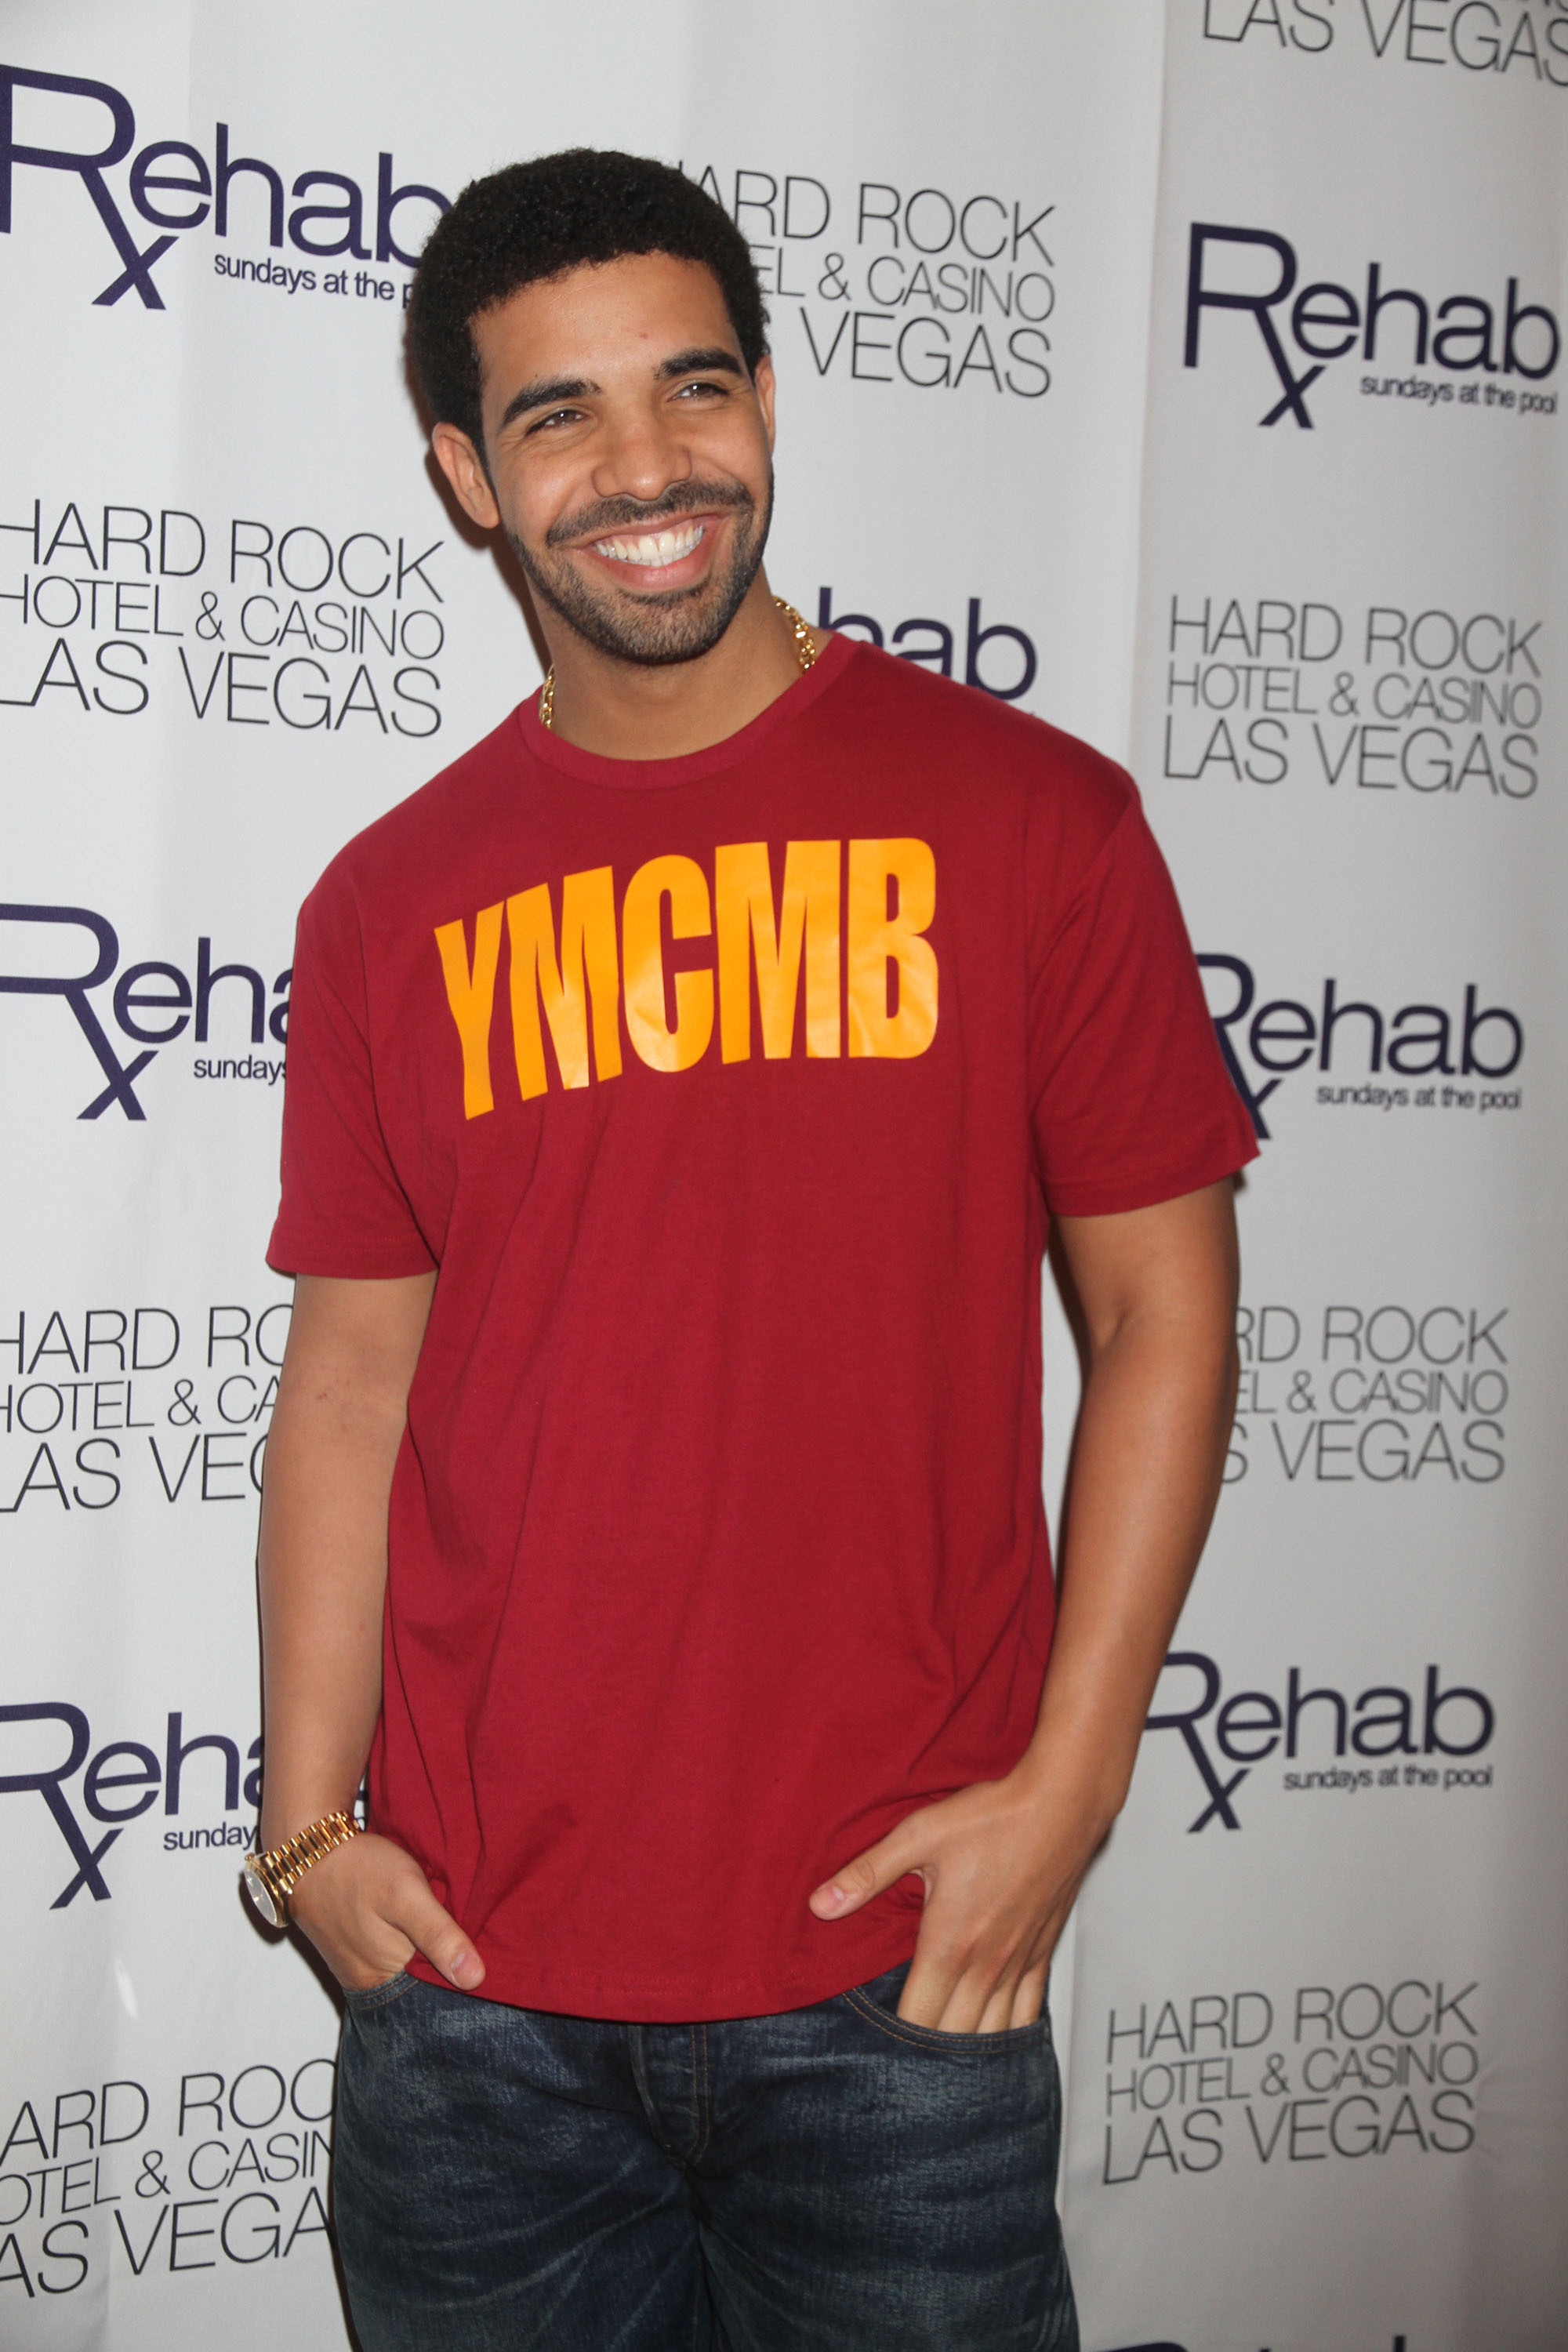 Rapper Drake hosts Rehab at Hard Rock Hotel & Casino                  Las Vegas, Nevada - 29.05.11                                    Where: Las Vegas, Nevada, United States                  When: 29 May 2011                  Credit: WENN